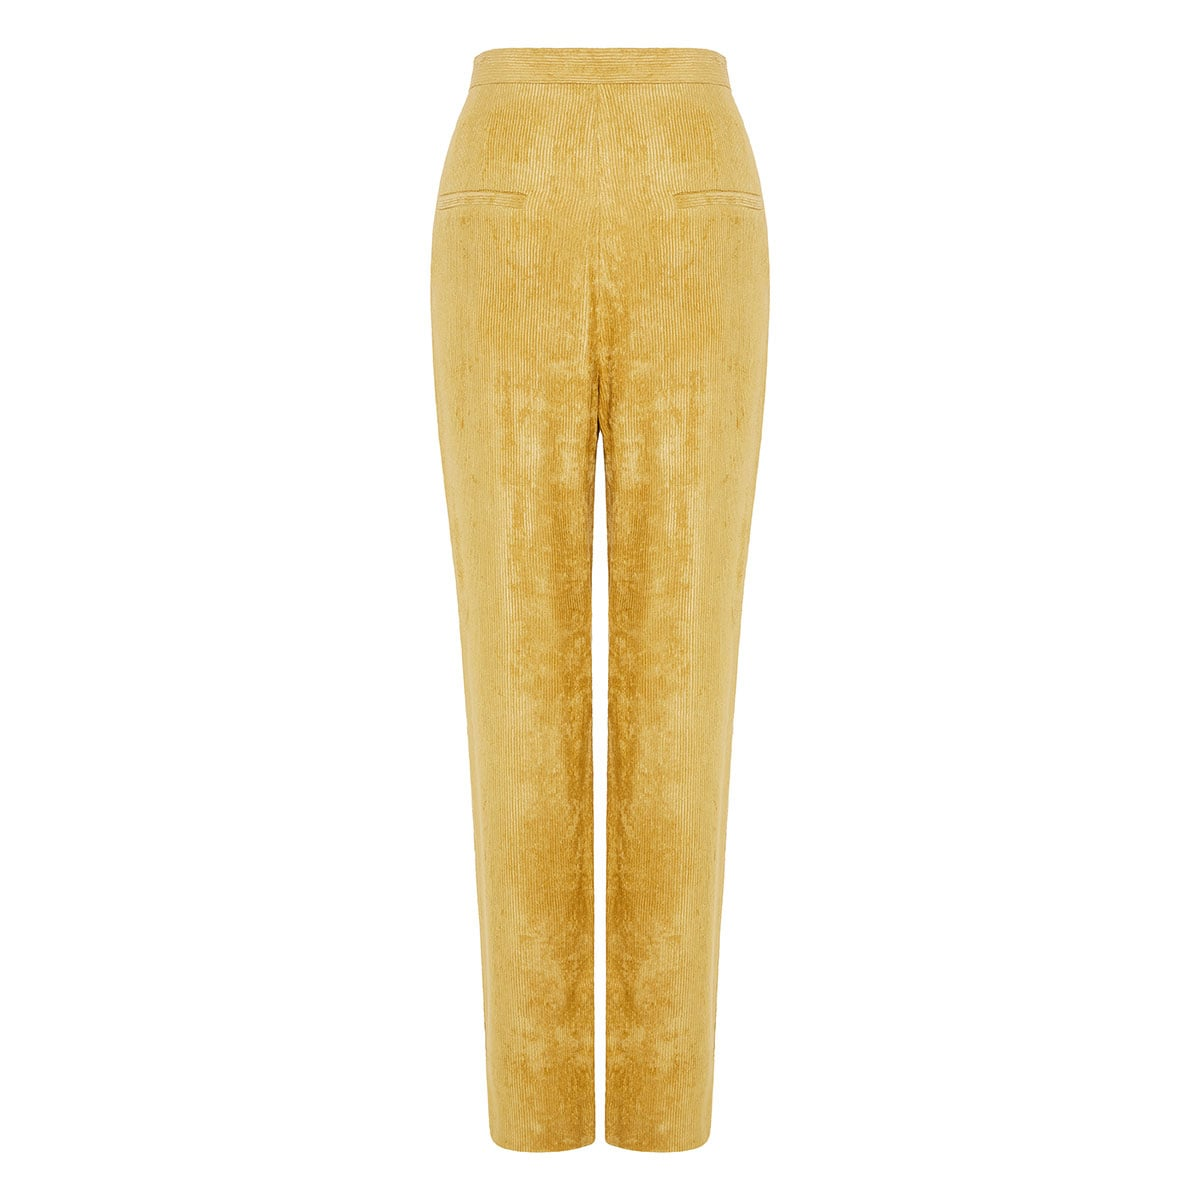 Fany corduroy wide-leg trousersFany corduroy wide-leg trousers